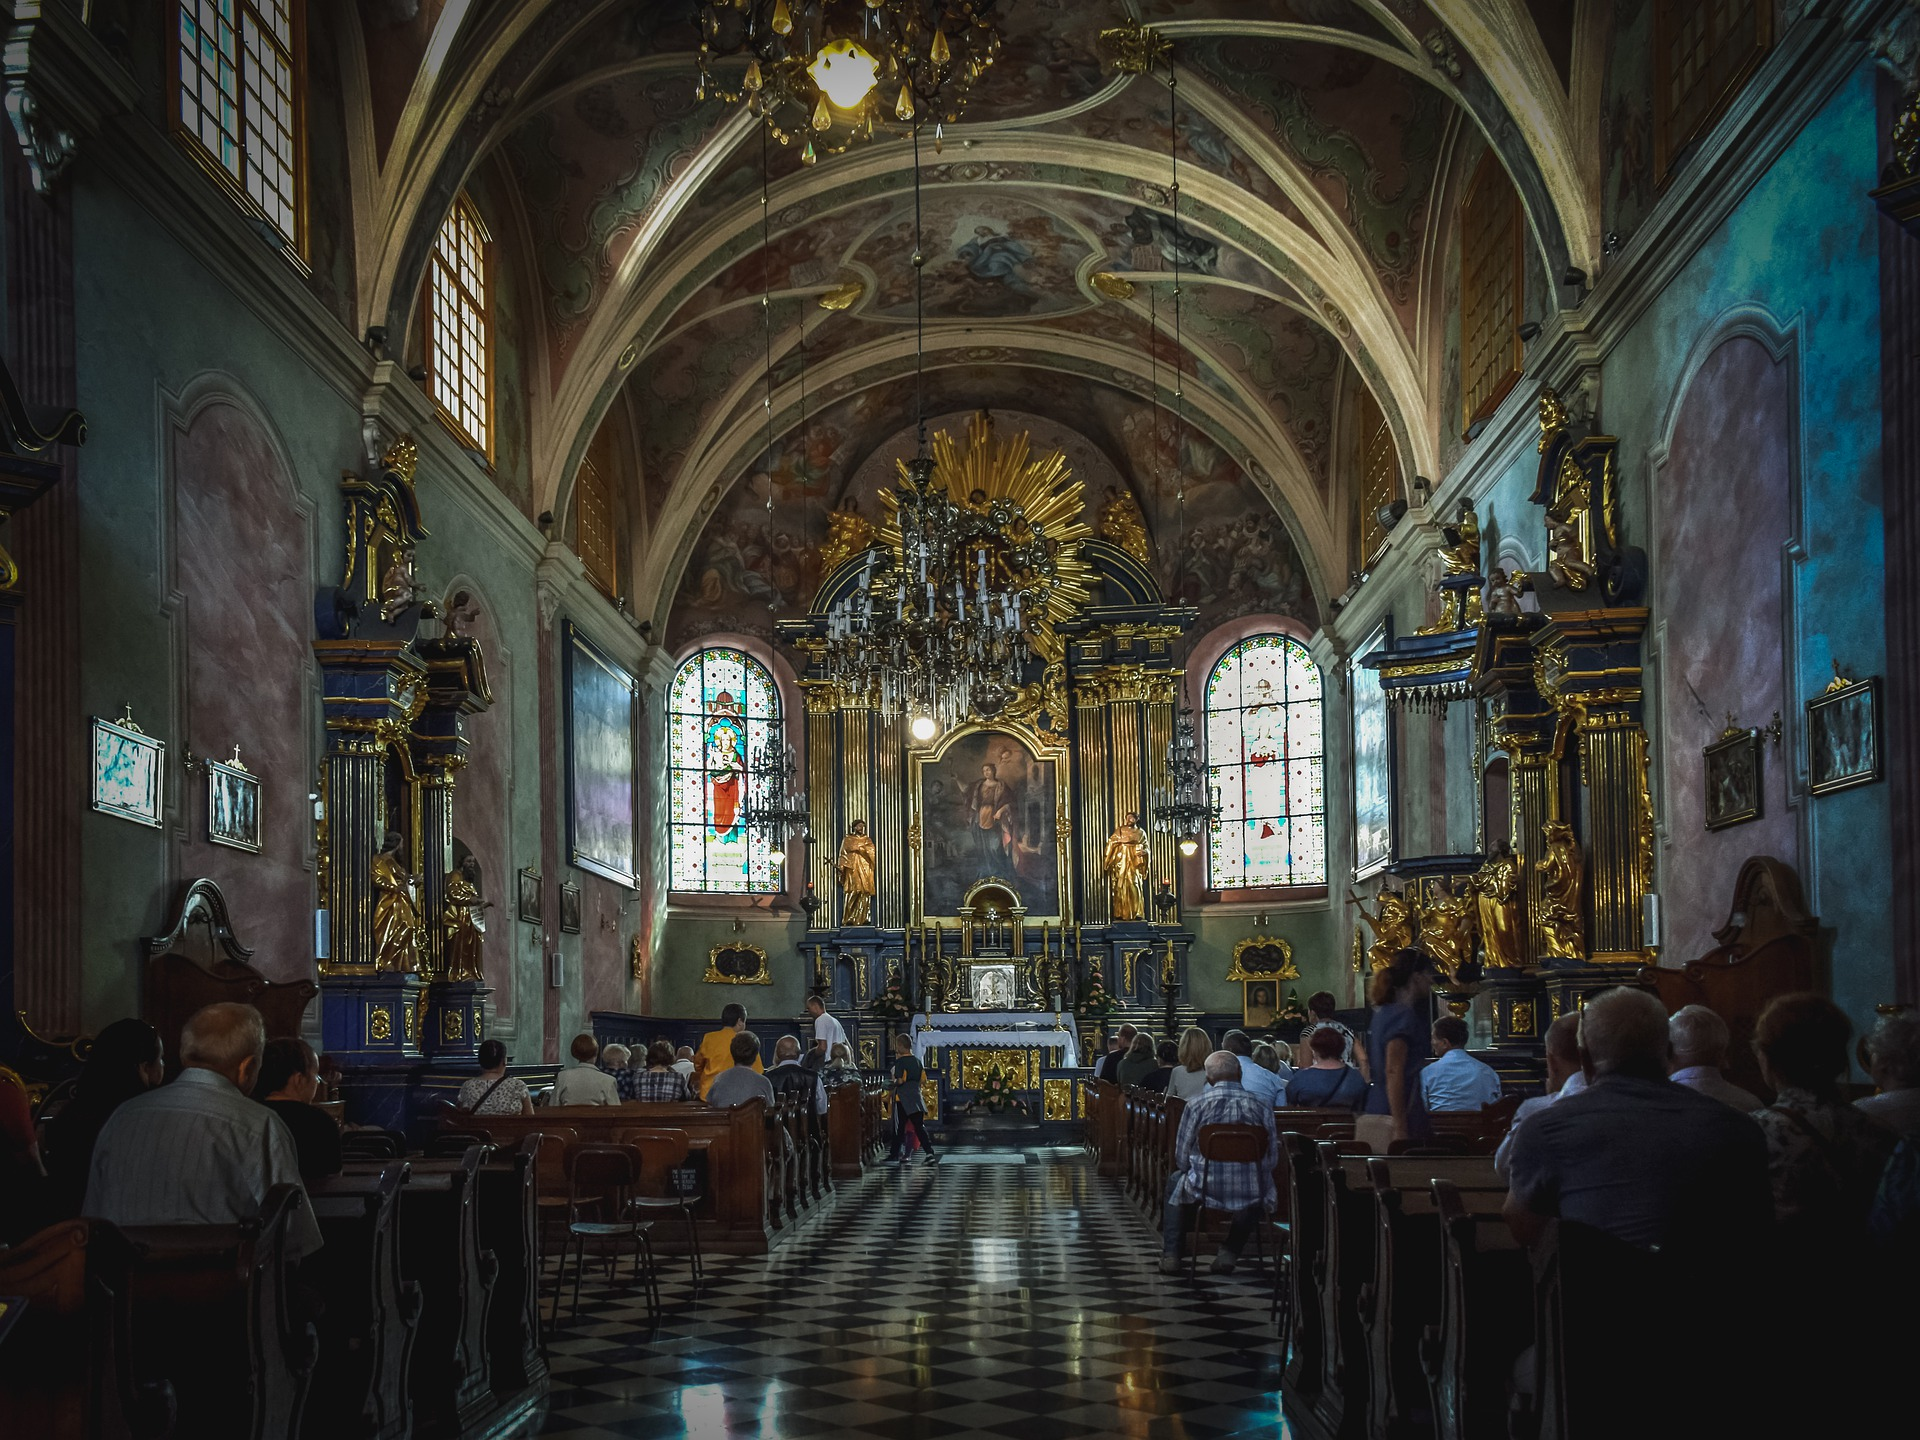 Traditionis Custodes: In the Hope of Liturgical Reform